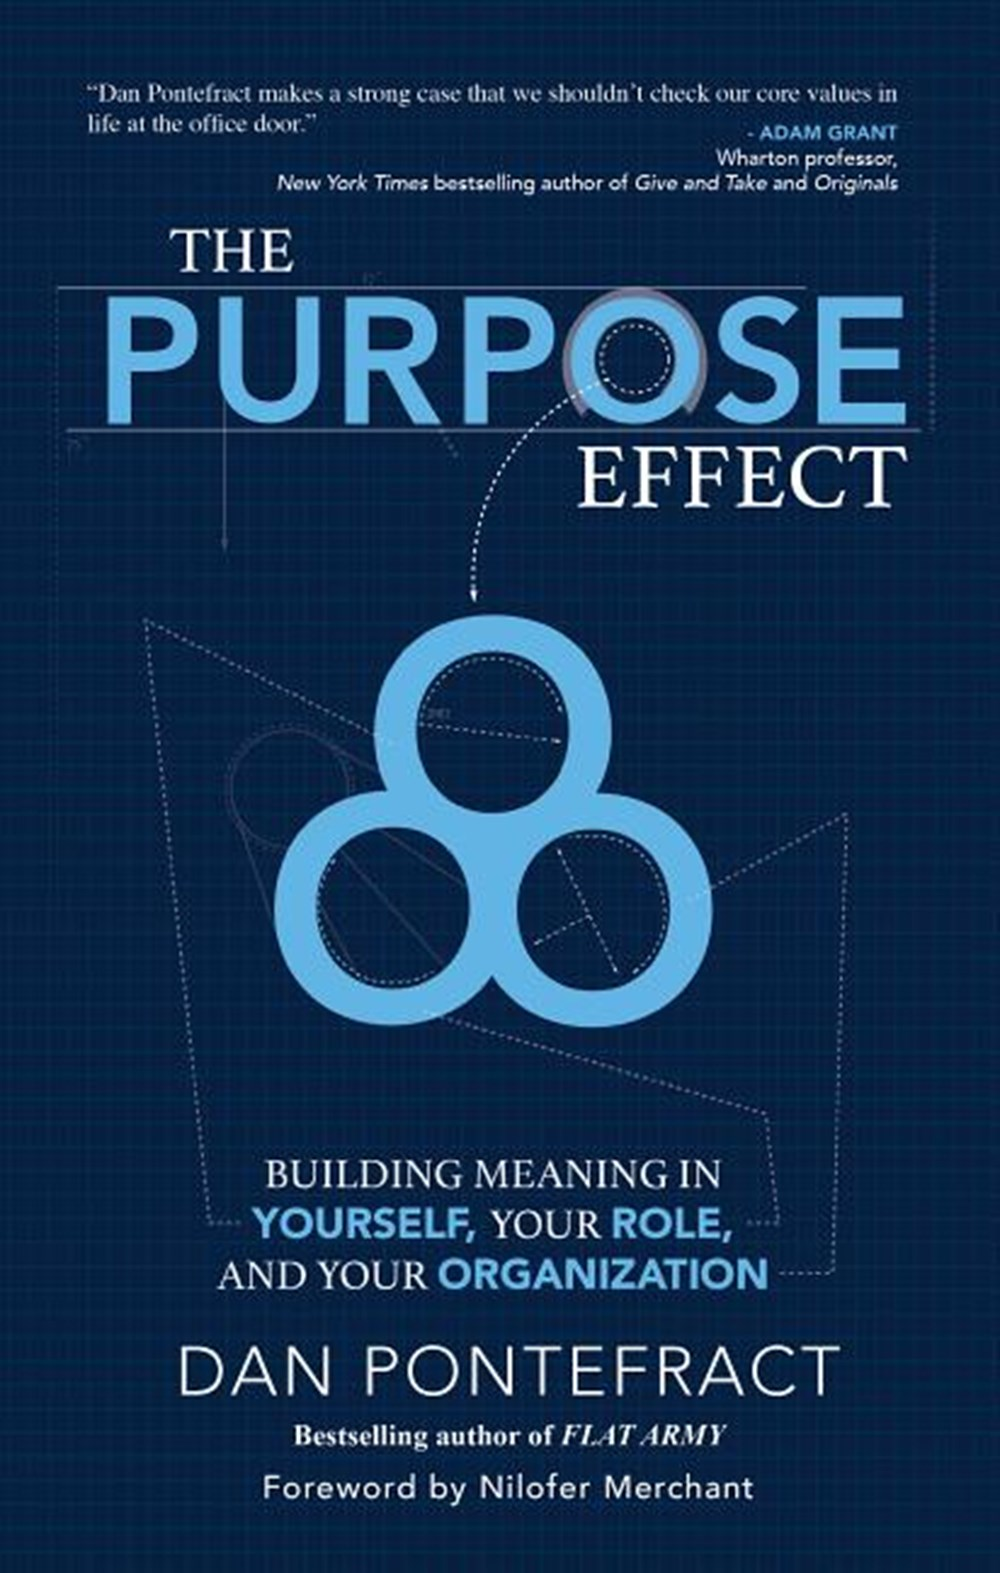 Purpose Effect Building Meaning in Yourself, Your Role and Your Organization